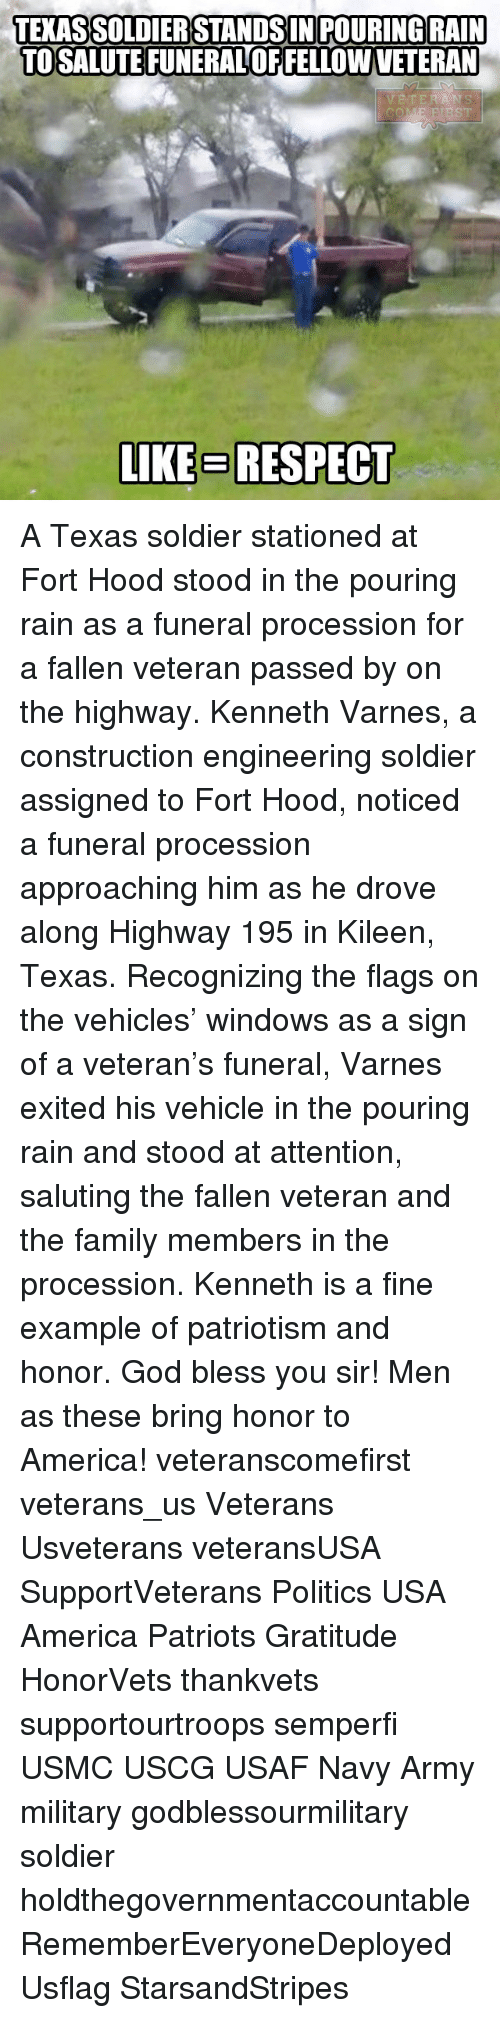 America, Family, and God: TERASSOLDIERSTANDSIN POURING RAIN  TOSALUTEFUNERALOFFELLOWVETERAN  VETERANS  COM  LIKE BRESPECT A Texas soldier stationed at Fort Hood stood in the pouring rain as a funeral procession for a fallen veteran passed by on the highway. Kenneth Varnes, a construction engineering soldier assigned to Fort Hood, noticed a funeral procession approaching him as he drove along Highway 195 in Kileen, Texas. Recognizing the flags on the vehicles' windows as a sign of a veteran's funeral, Varnes exited his vehicle in the pouring rain and stood at attention, saluting the fallen veteran and the family members in the procession. Kenneth is a fine example of patriotism and honor. God bless you sir! Men as these bring honor to America! veteranscomefirst veterans_us Veterans Usveterans veteransUSA SupportVeterans Politics USA America Patriots Gratitude HonorVets thankvets supportourtroops semperfi USMC USCG USAF Navy Army military godblessourmilitary soldier holdthegovernmentaccountable RememberEveryoneDeployed Usflag StarsandStripes